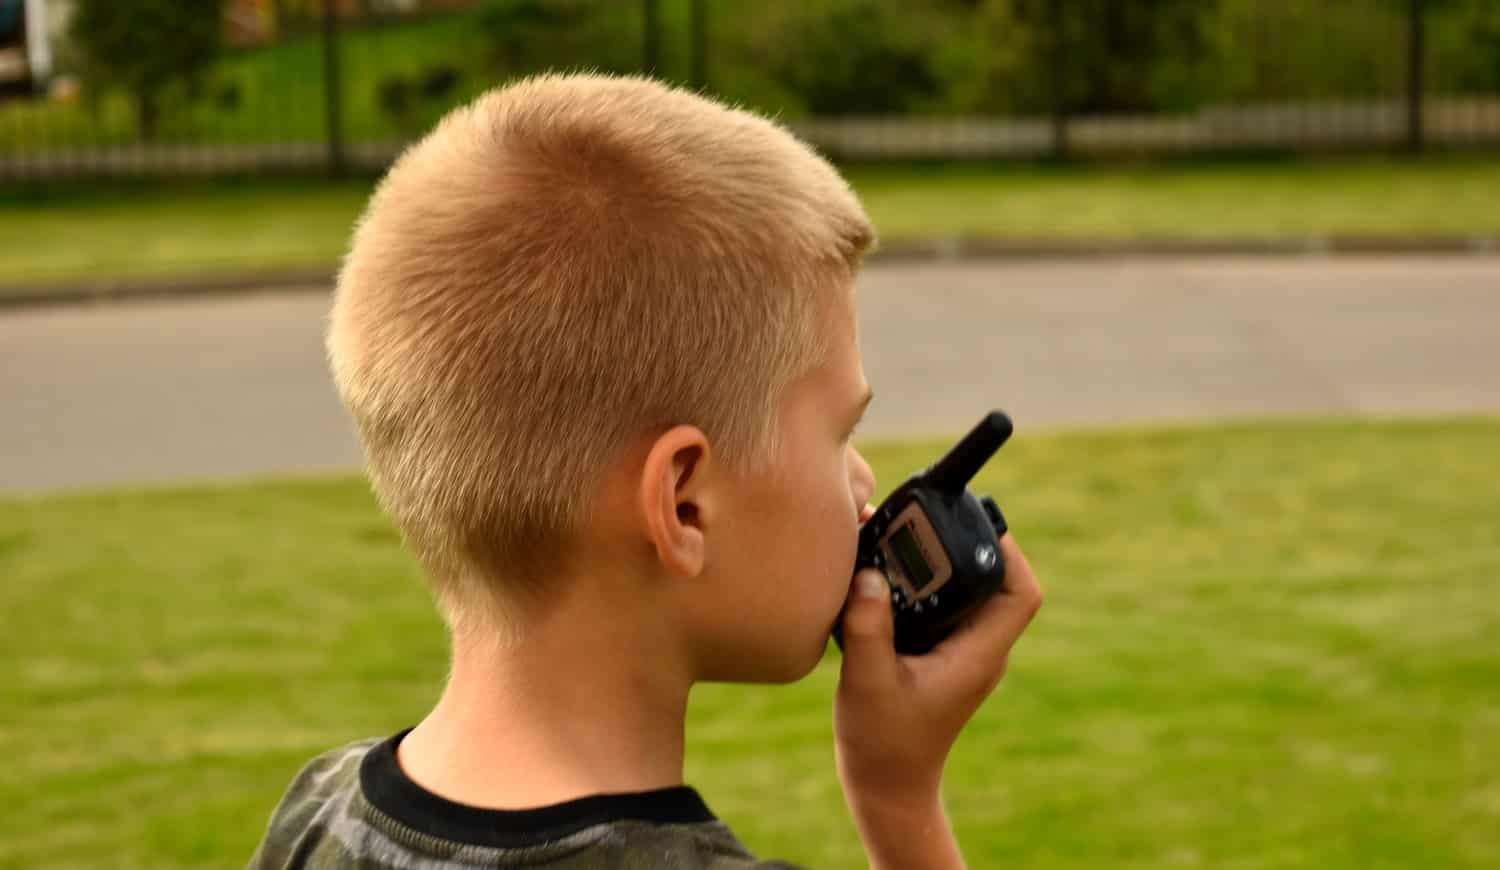 Children's toy walkie-talkie in hand. The child plays in the fresh air.